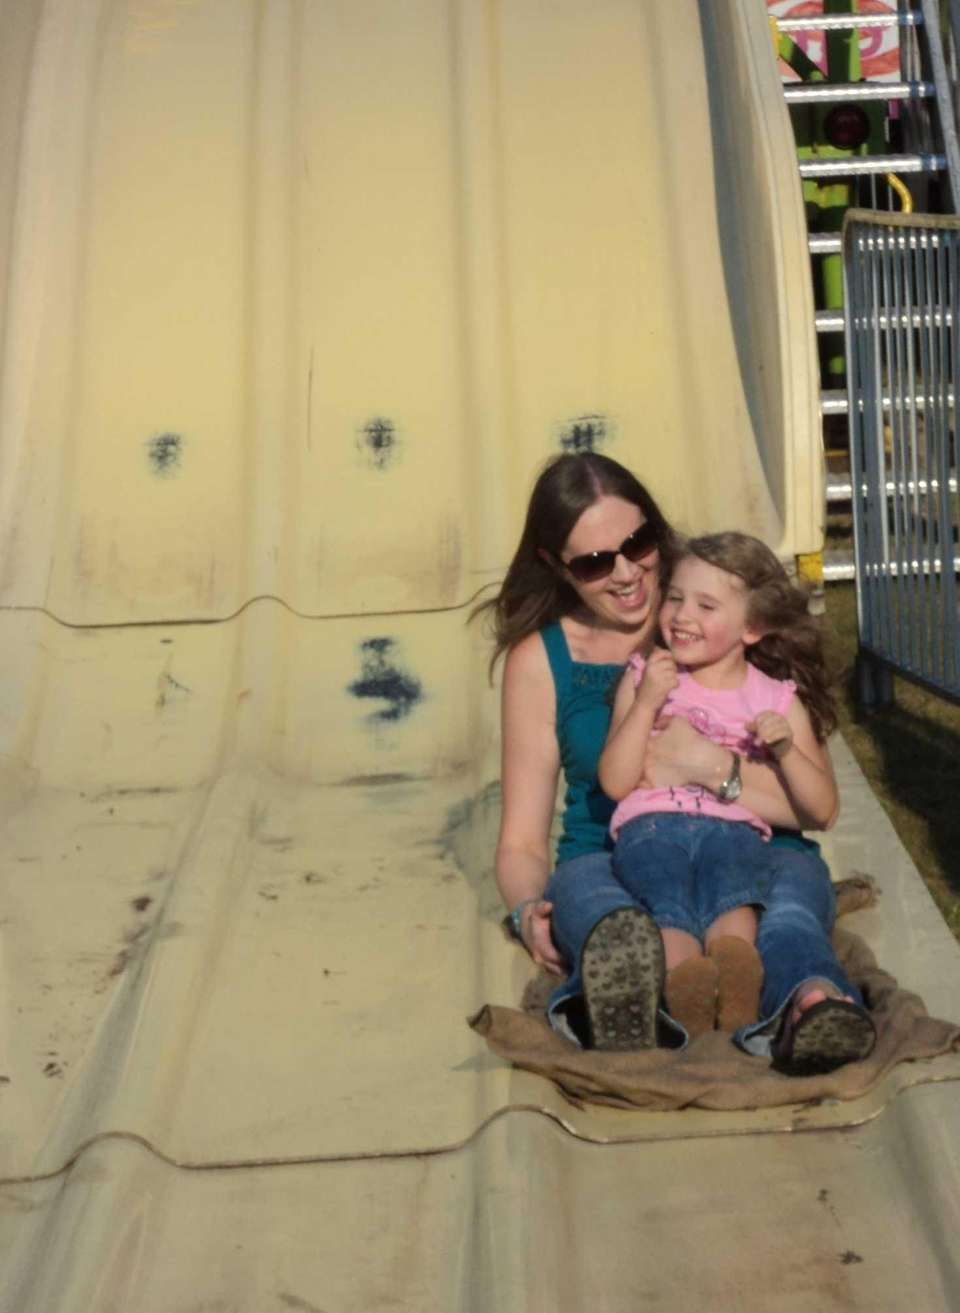 Port Jefferson resident Nicole Richter and her daughter,